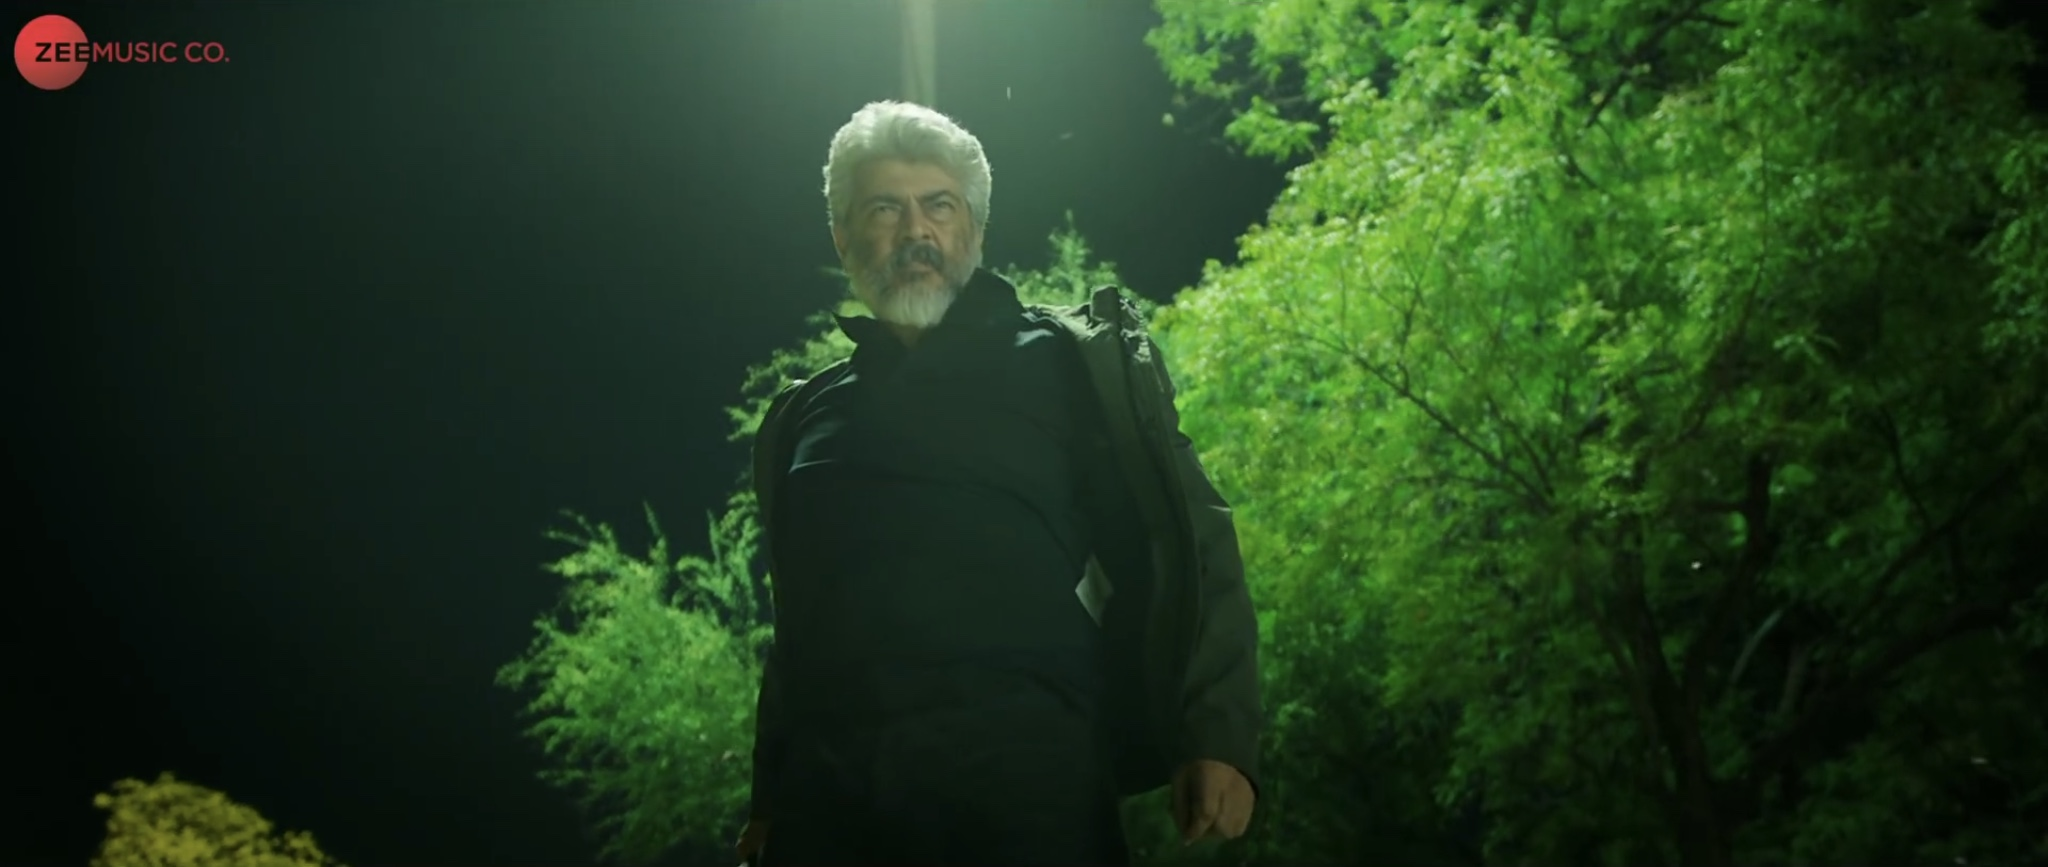 Nerkonda Paarvai Trailer Talk: A Terrific Teaser Has Dropped And At First Glance, It Looks Like It Is a Lot More Than Just A Remake, Film Companion